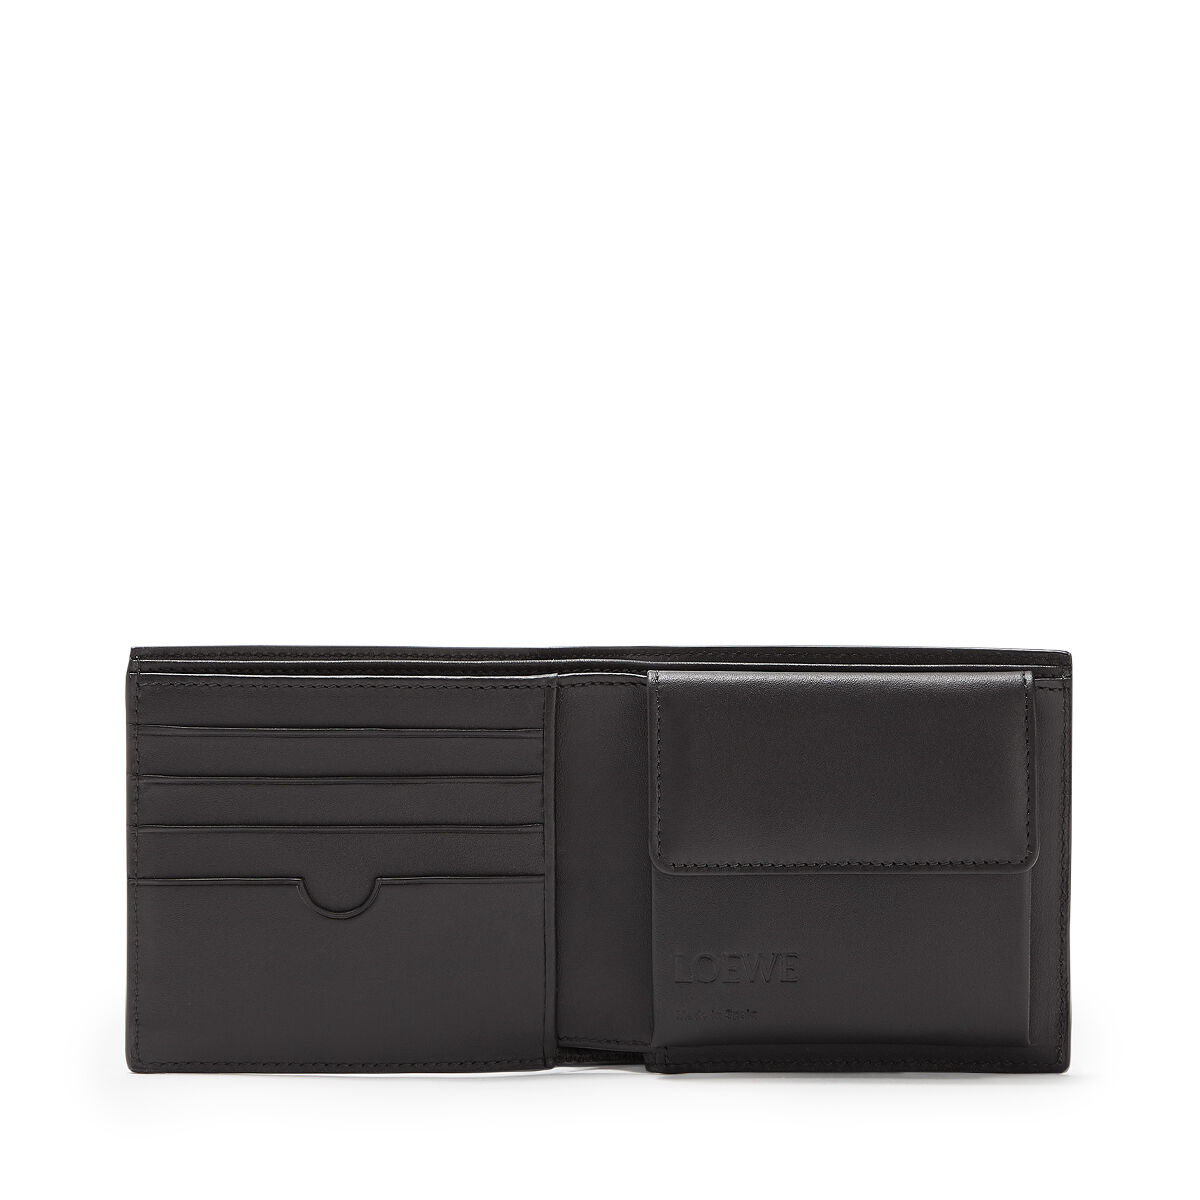 LOEWE Bifold/Coin Wallet Mocca/Black all